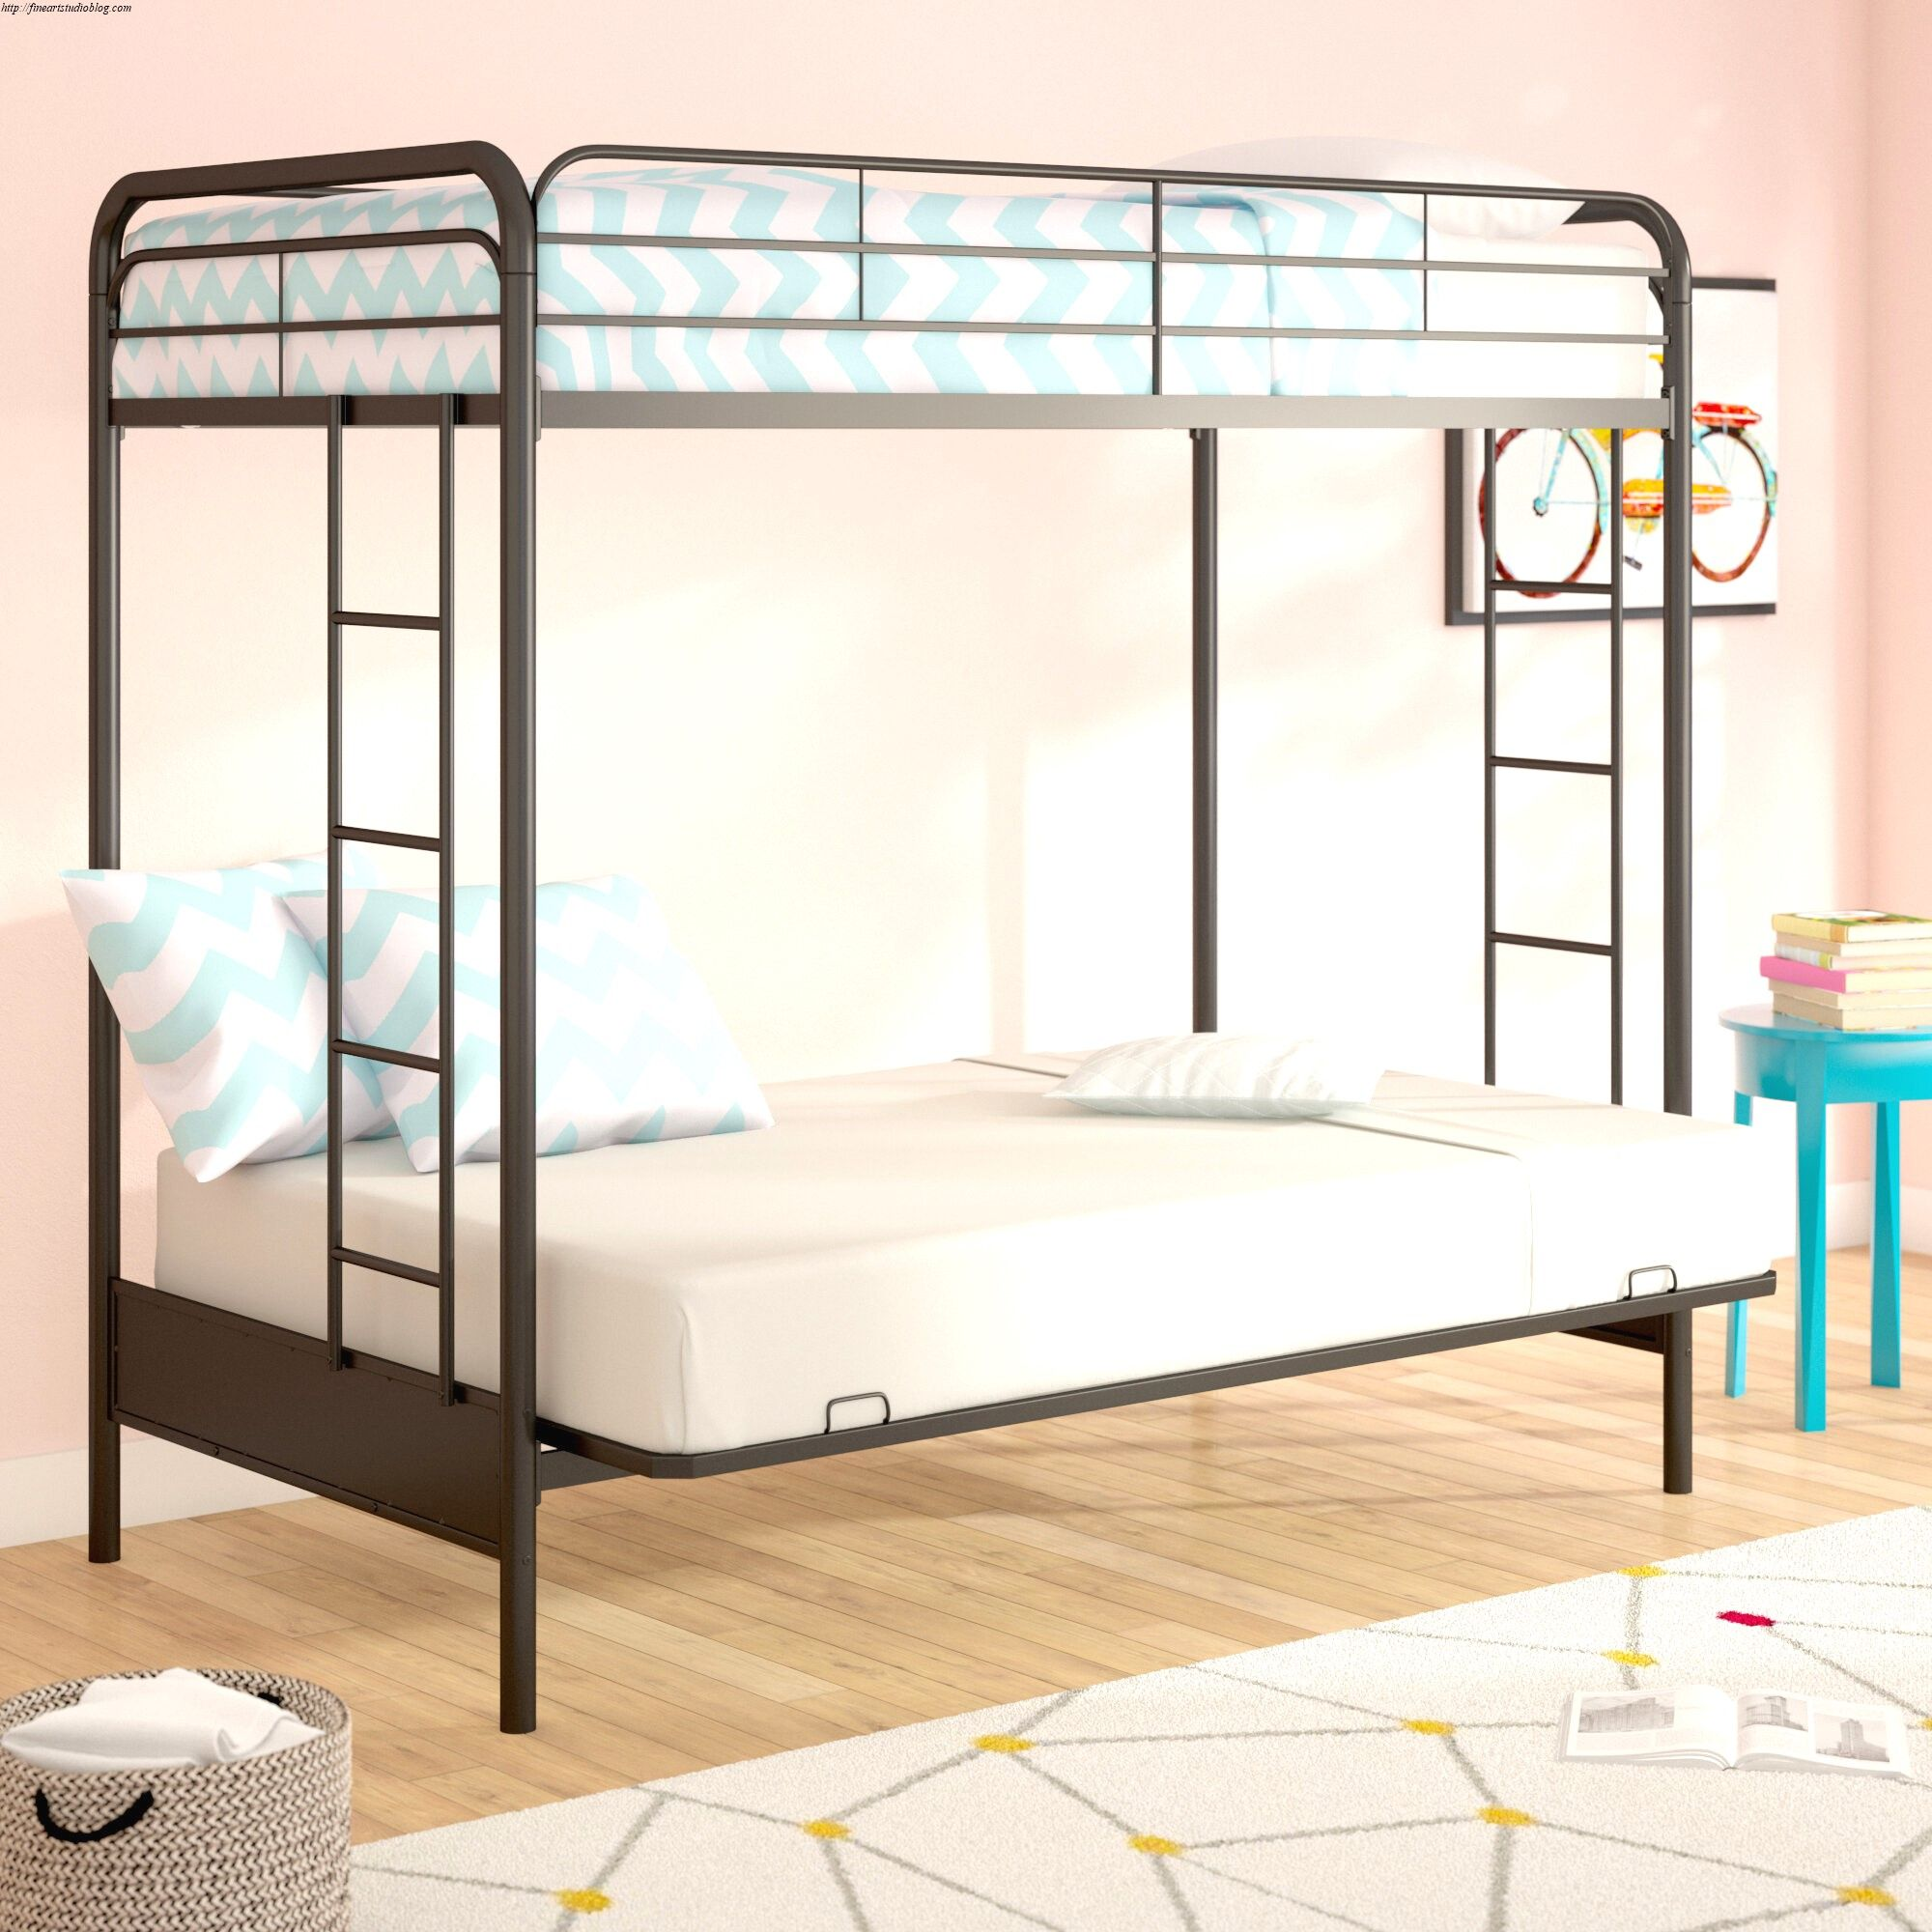 29 Incredible Twin Over Futon Bunk Bed With Mattress Included Feeling Twin bunk beds with mattress included